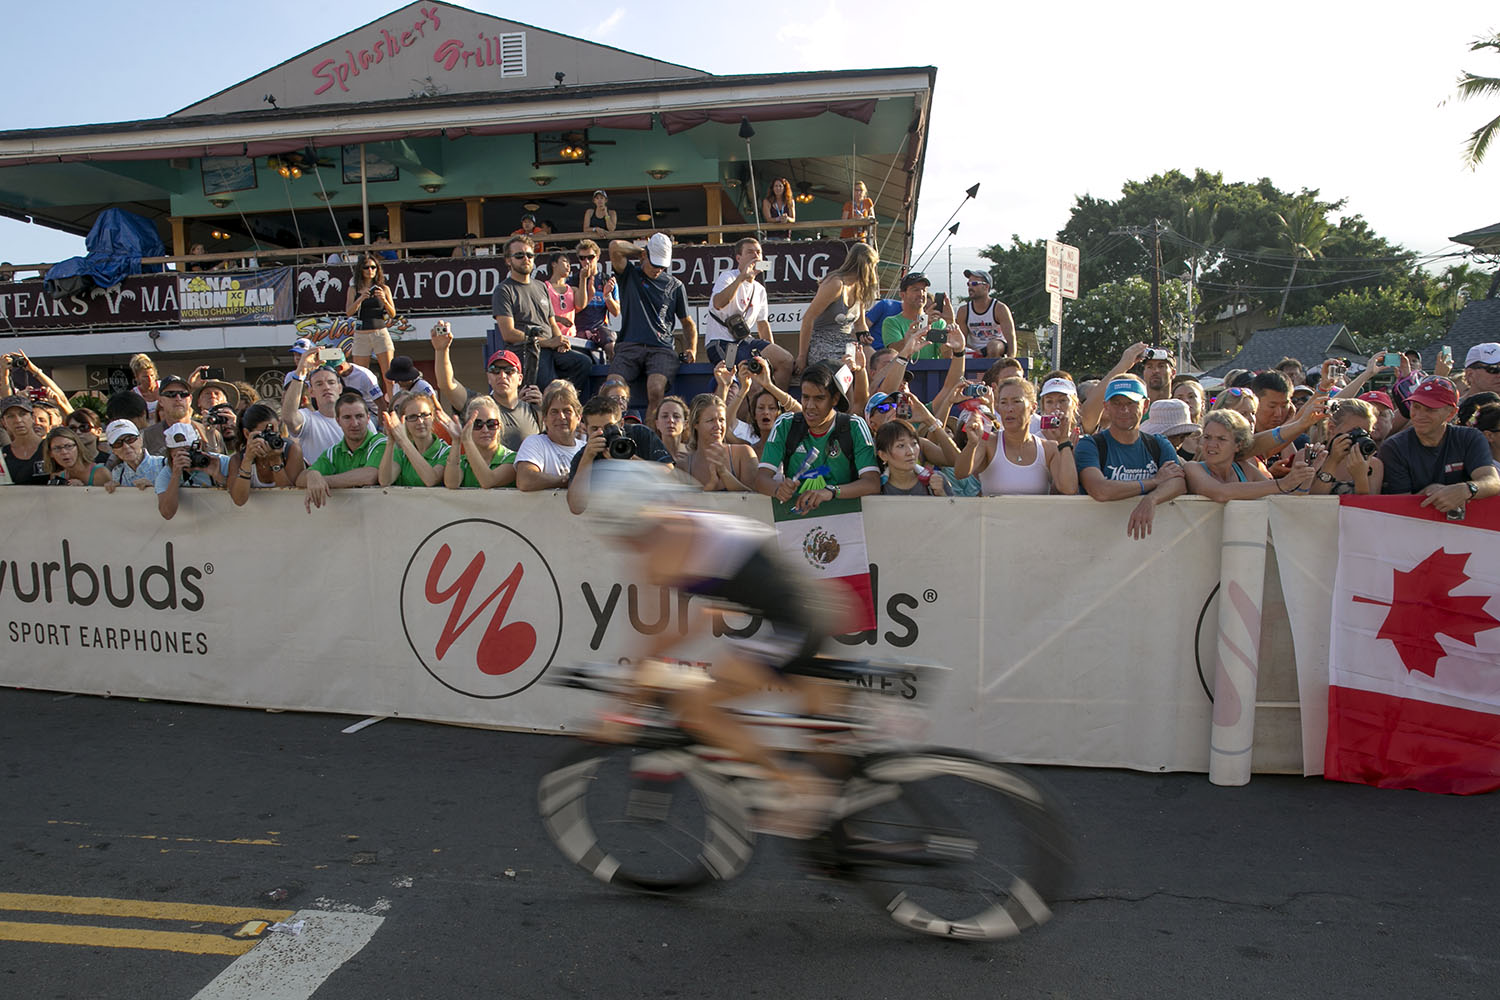 Onlookers watch bicyclist at the start of the 112-mile bike race of the 2014 IRONMAN World Championship.